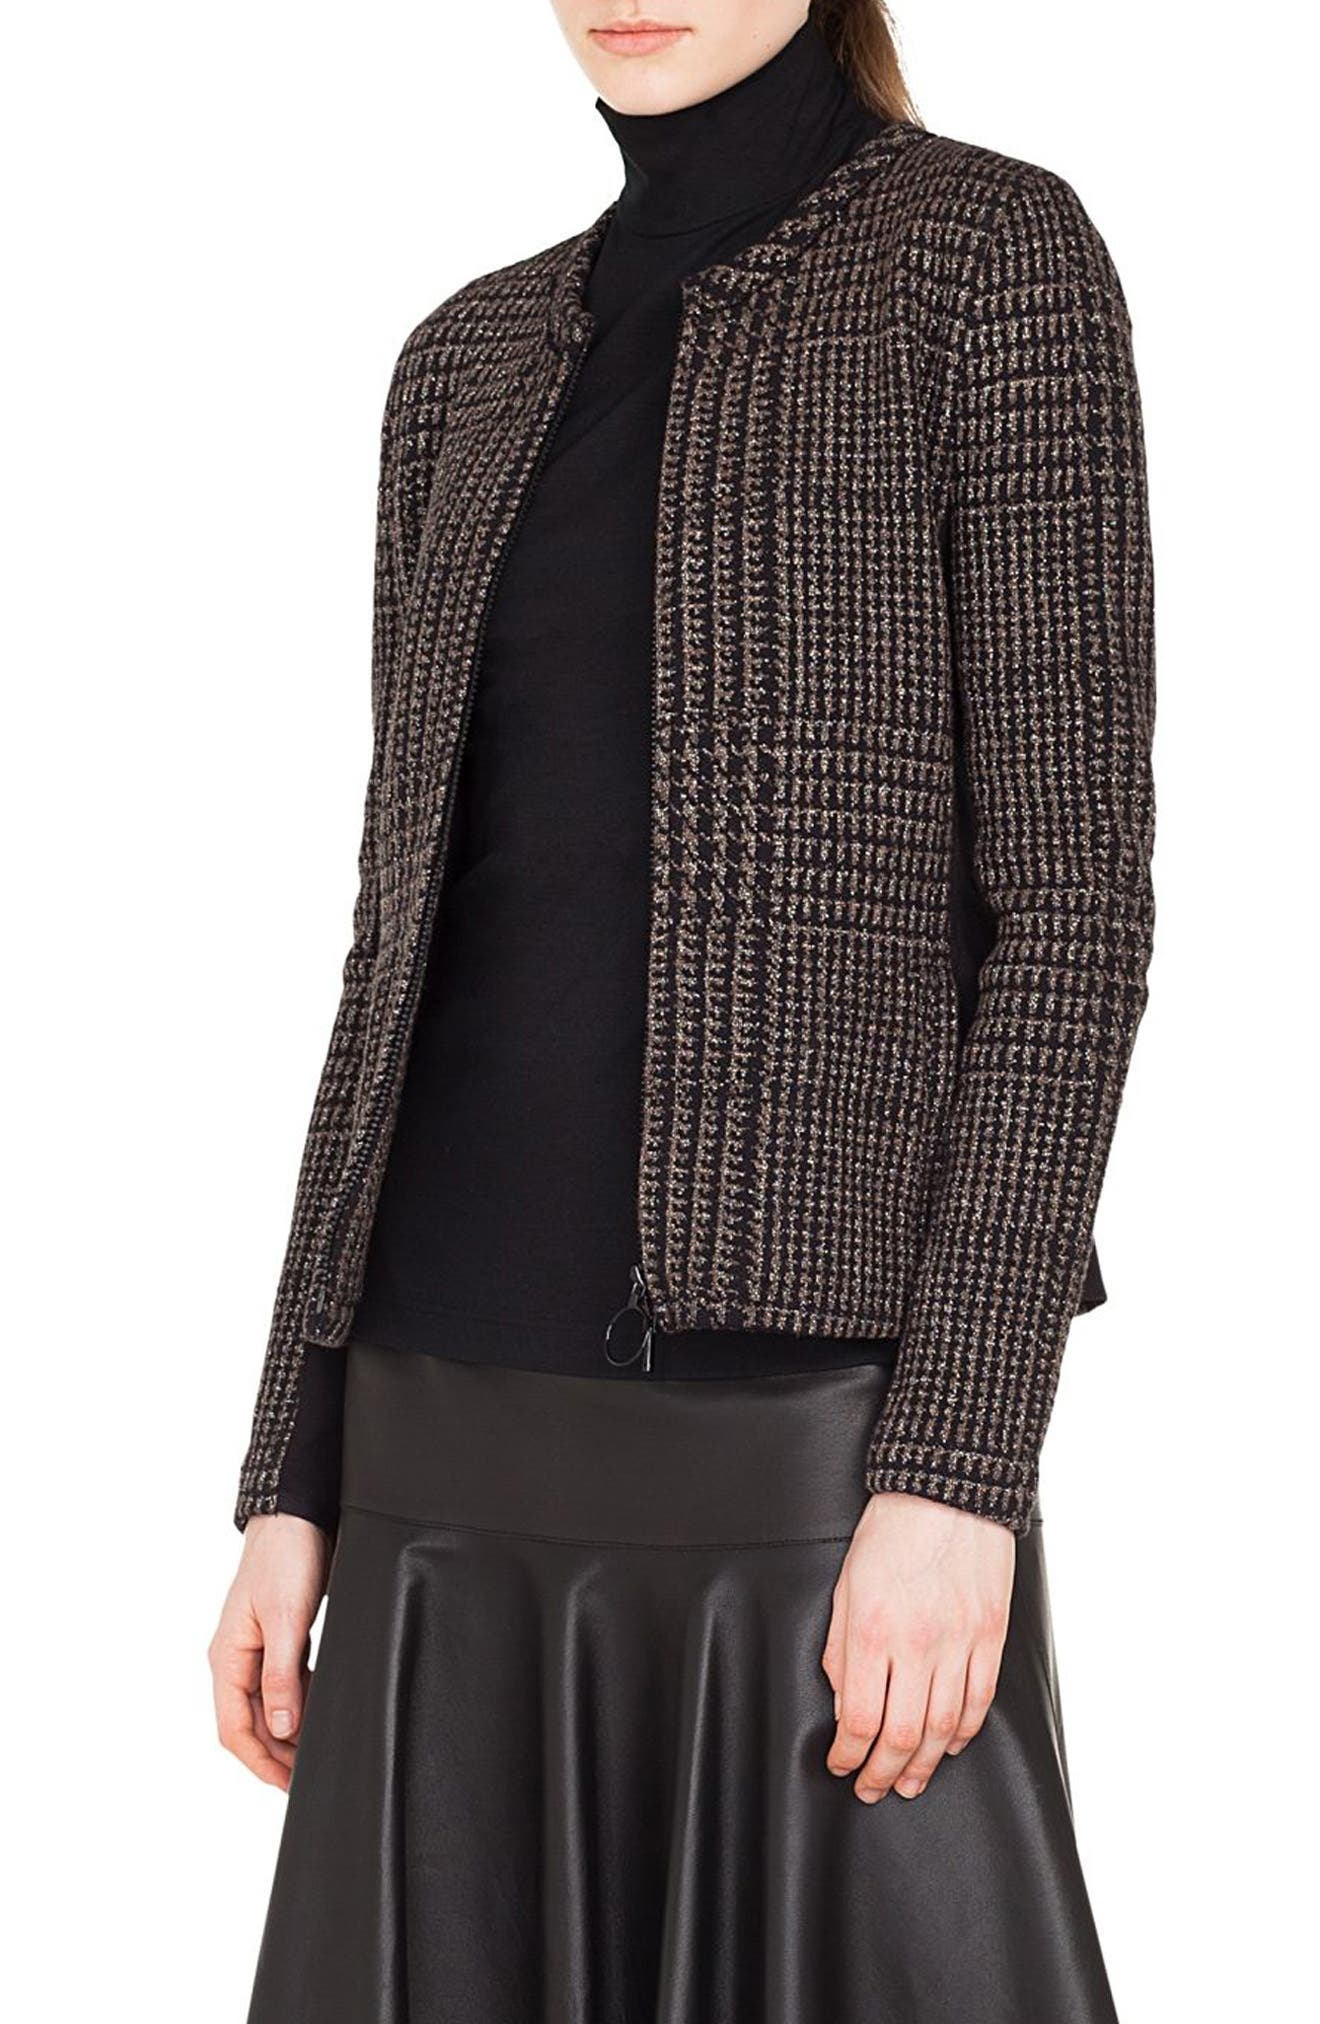 Metallic Houndstooth Jacquard Jacket,                             Alternate thumbnail 3, color,                             BLACK/ TAUPE